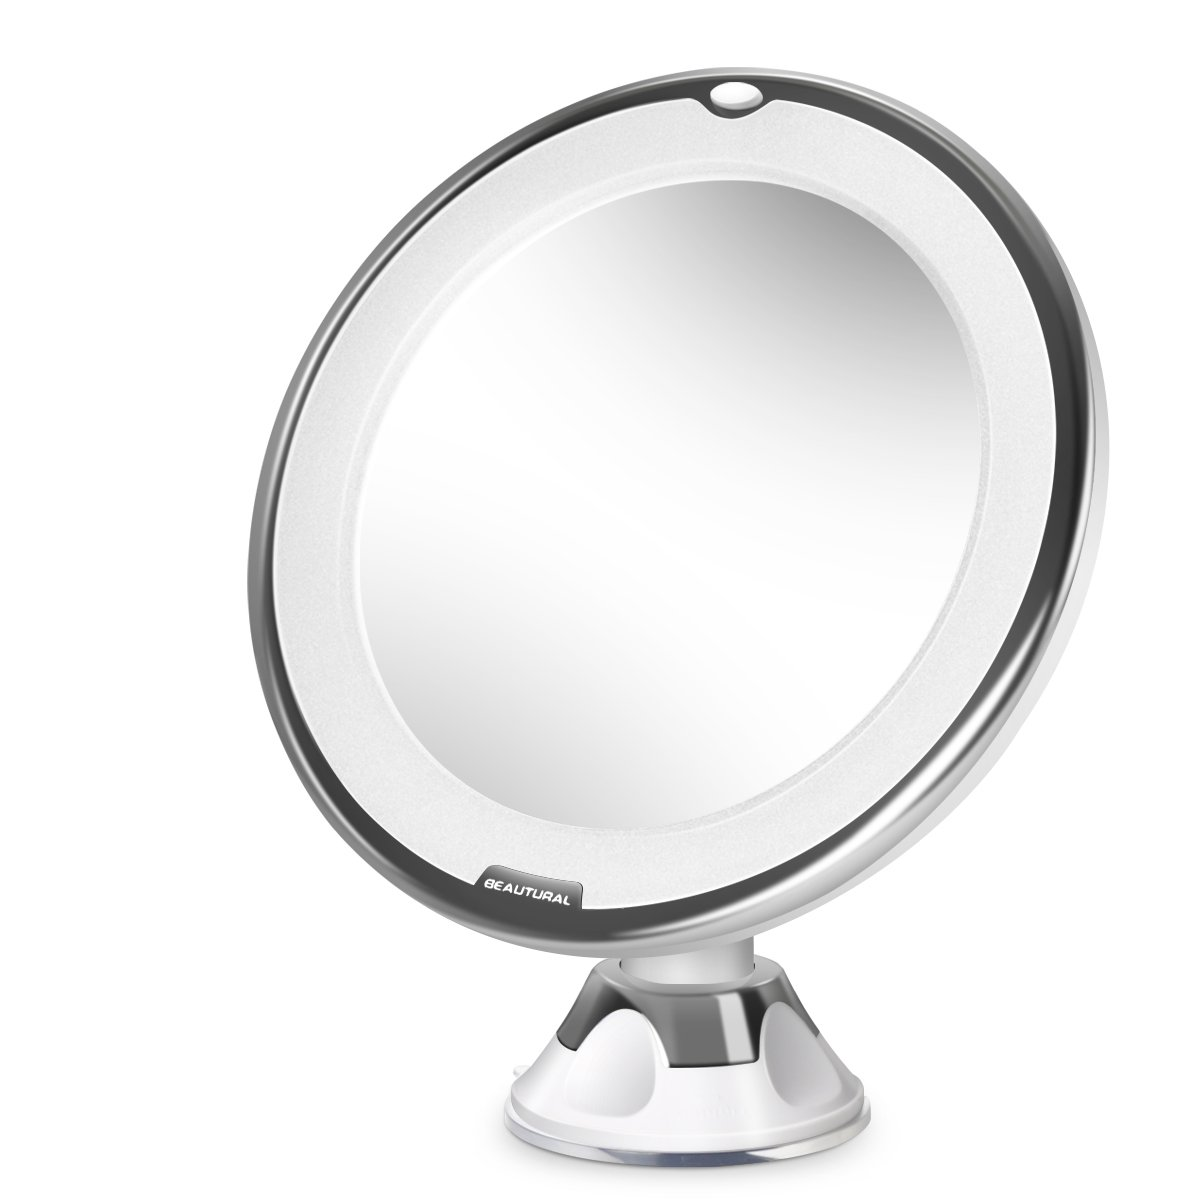 BEAUTURAL Makeup Mirror 10X Magnifying Lighted Vanity Mirror with Natural White LED, 360 Degree Swivel Rotation and Locking Suction 1byone Products Inc.